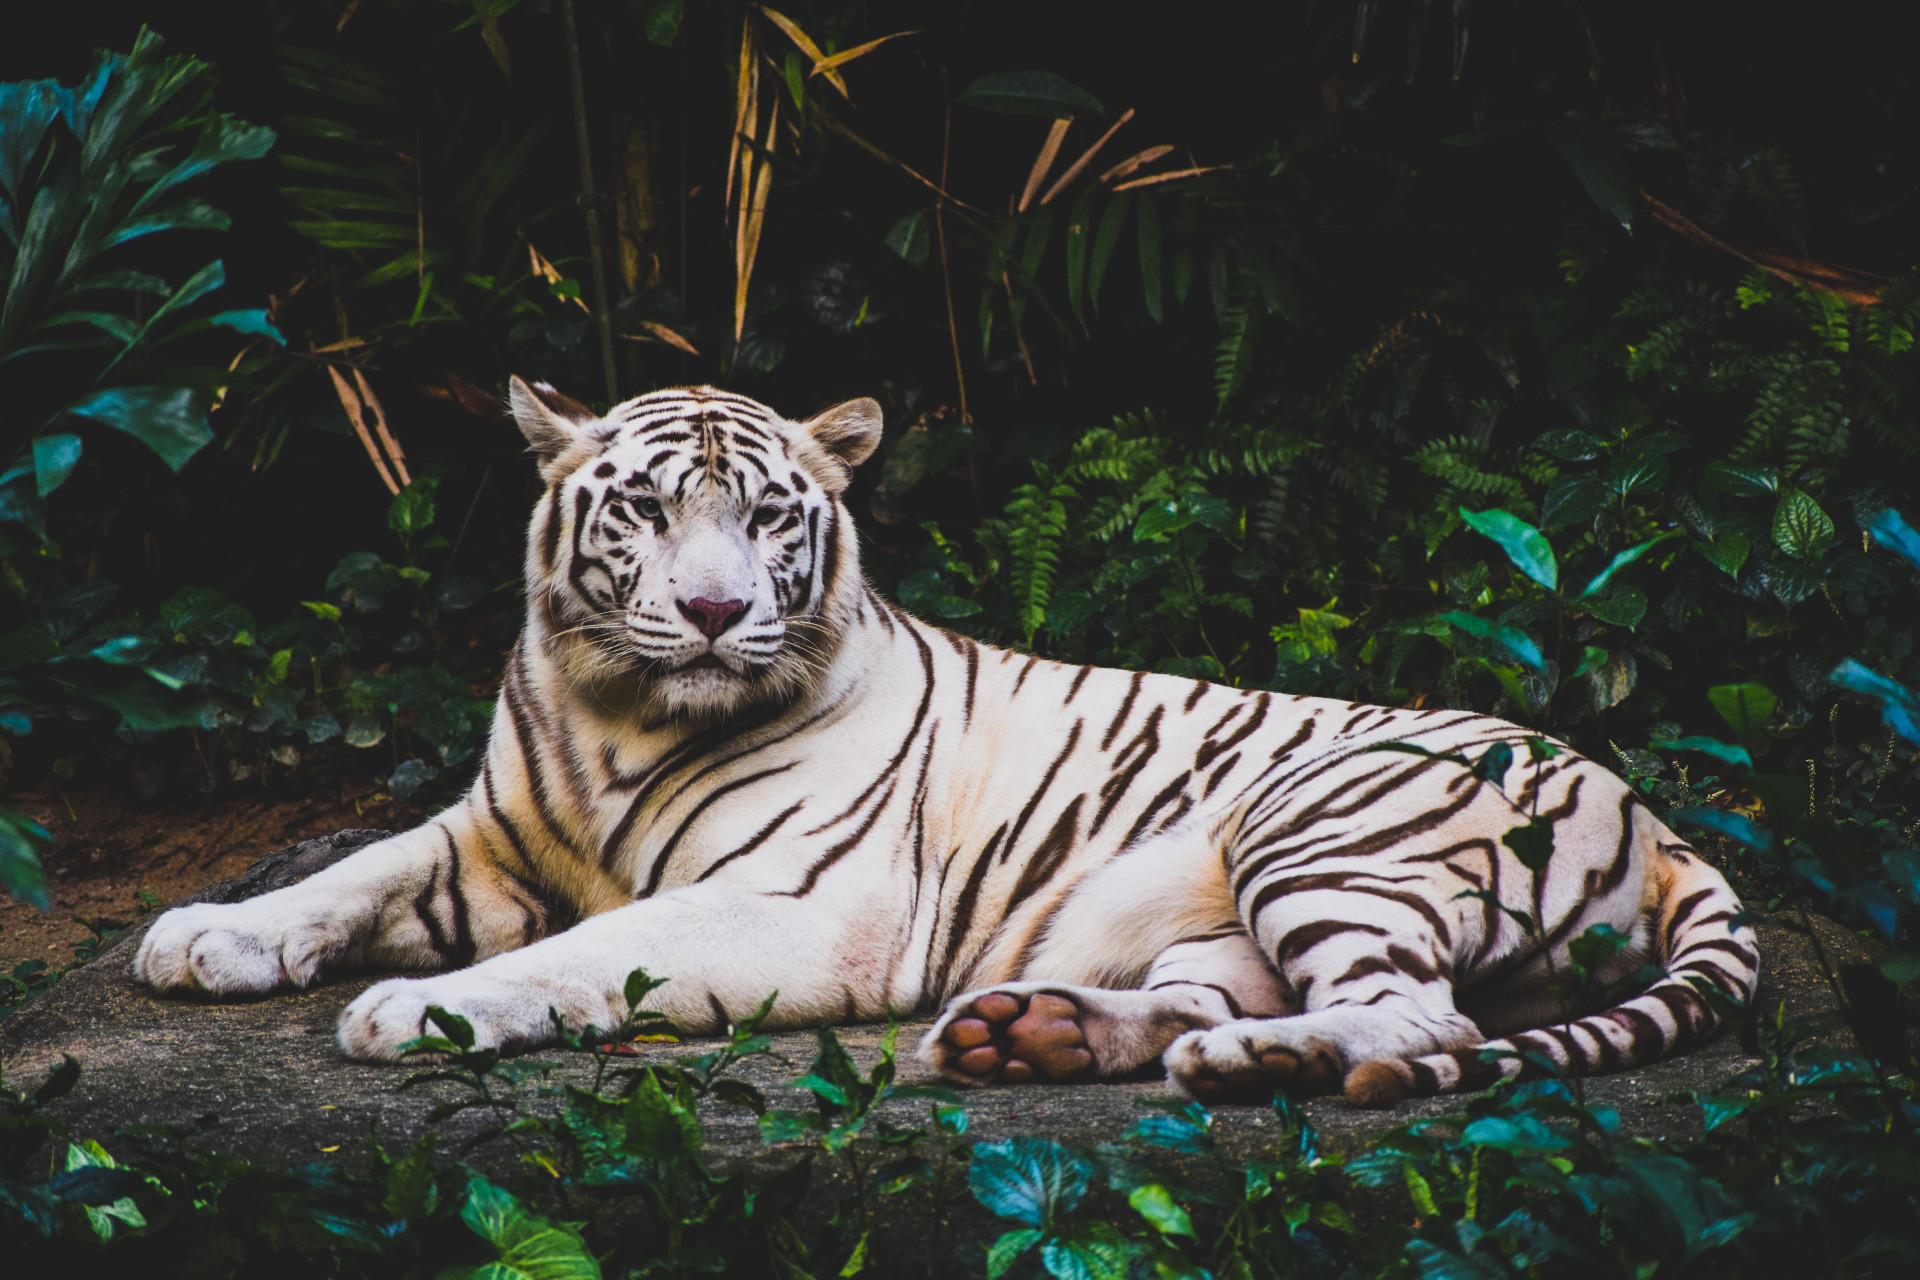 A white tiger lying in a tropical jungle